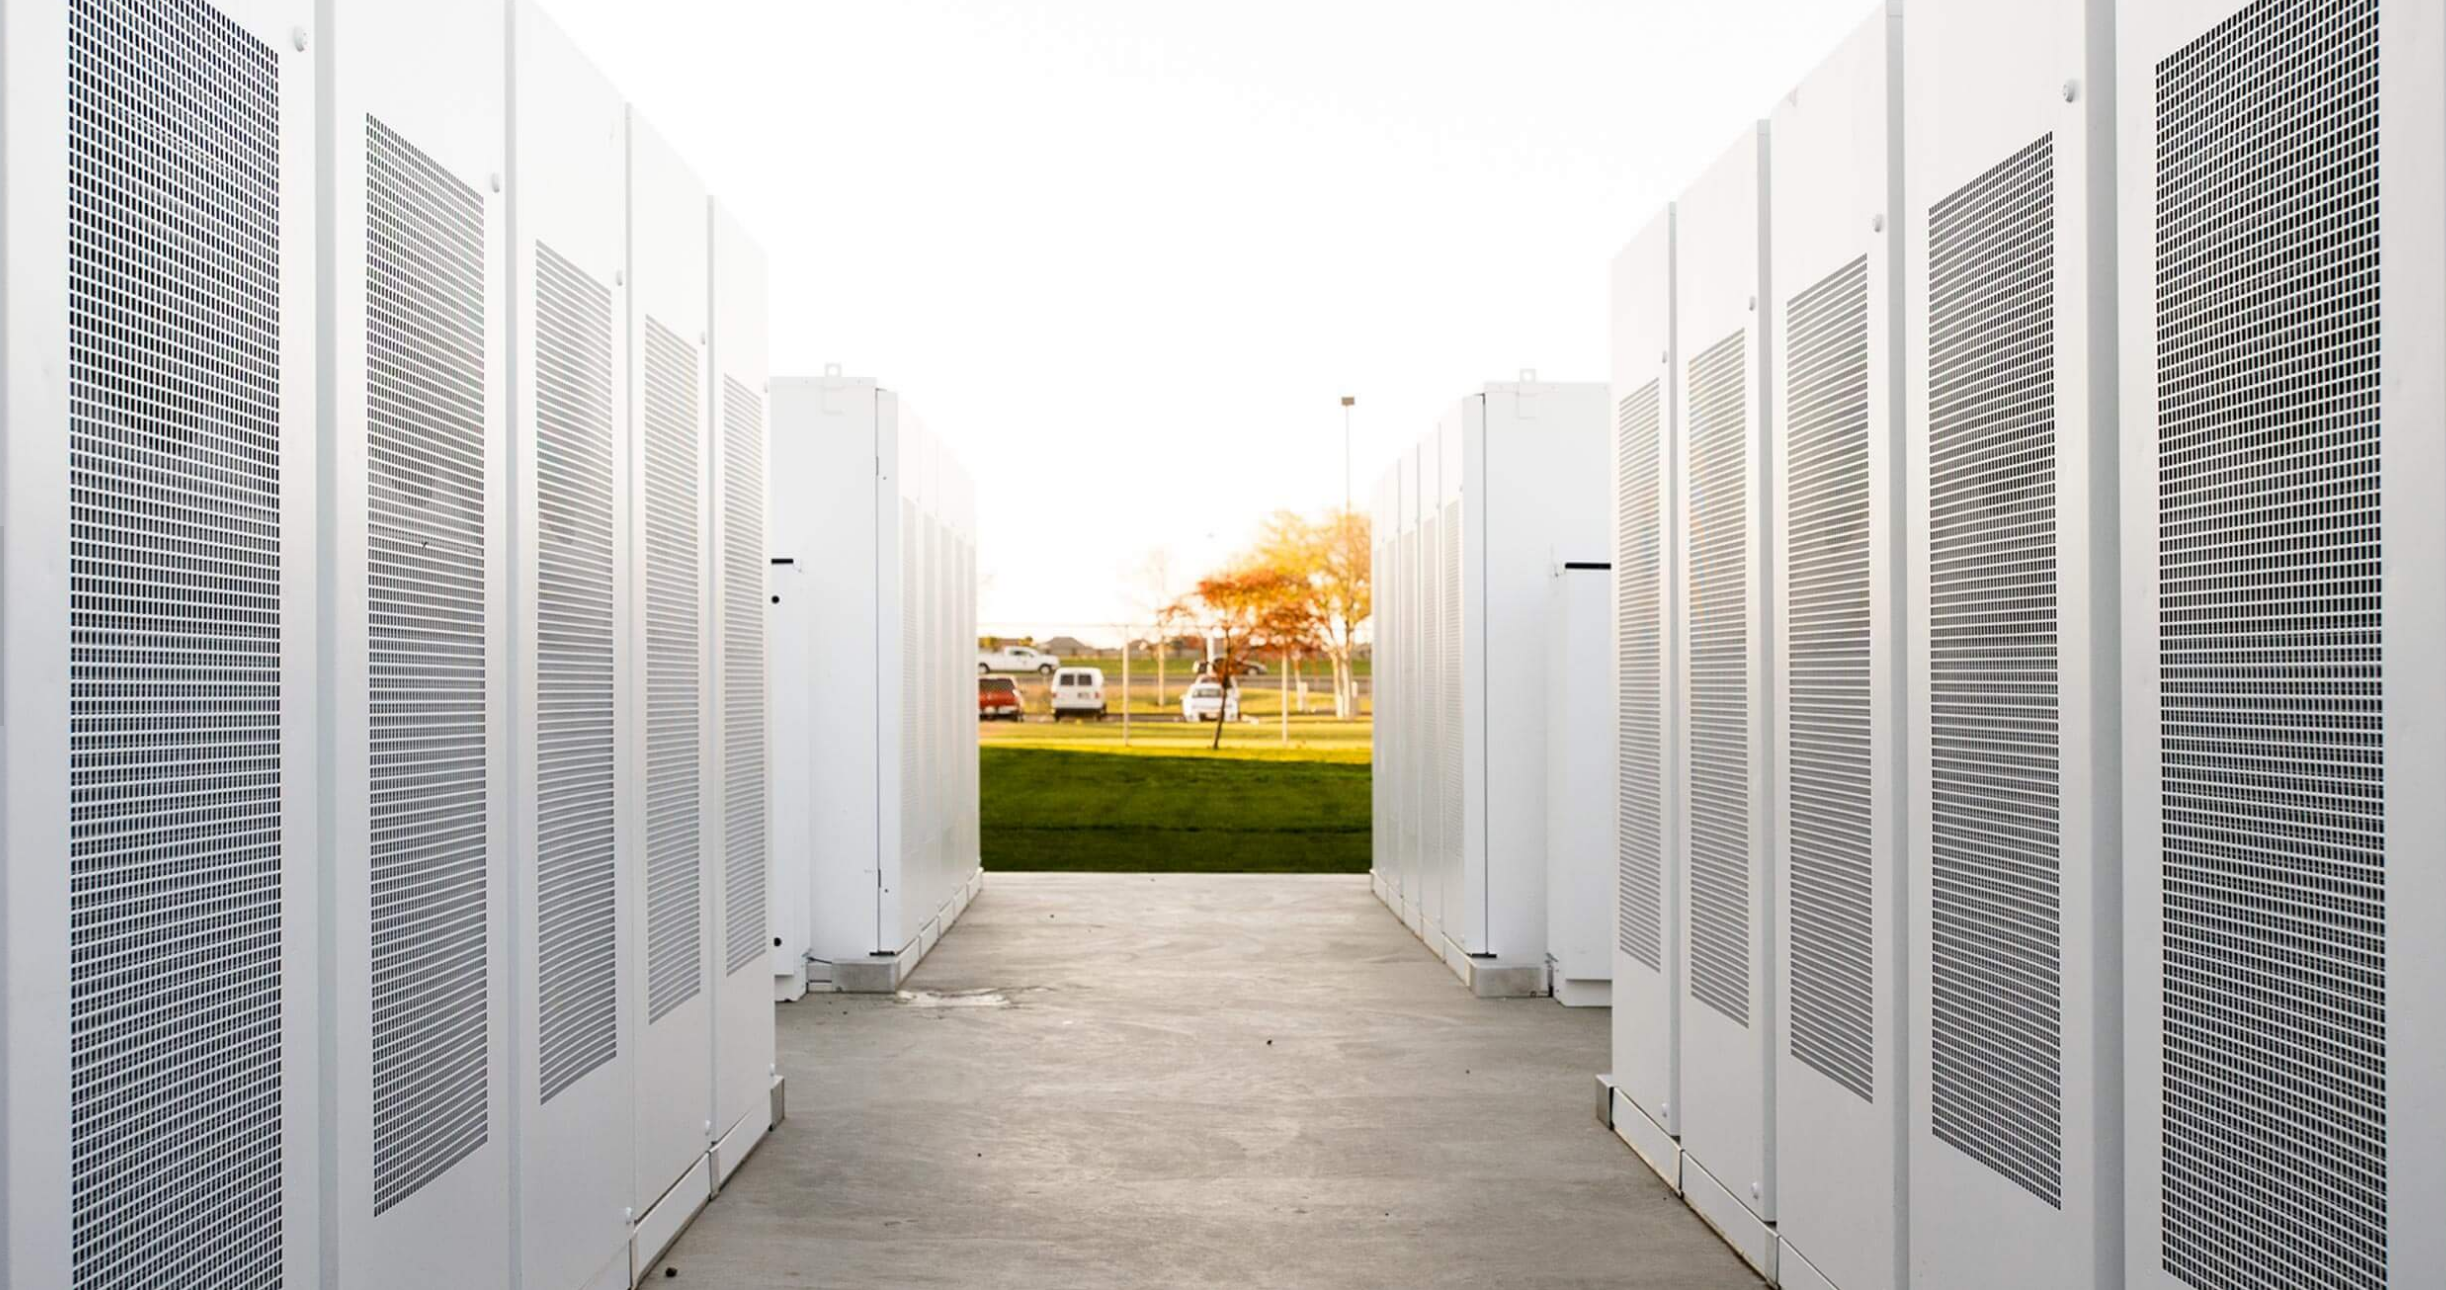 Tesla to Build World's Largest Battery Power Storage Facility in California